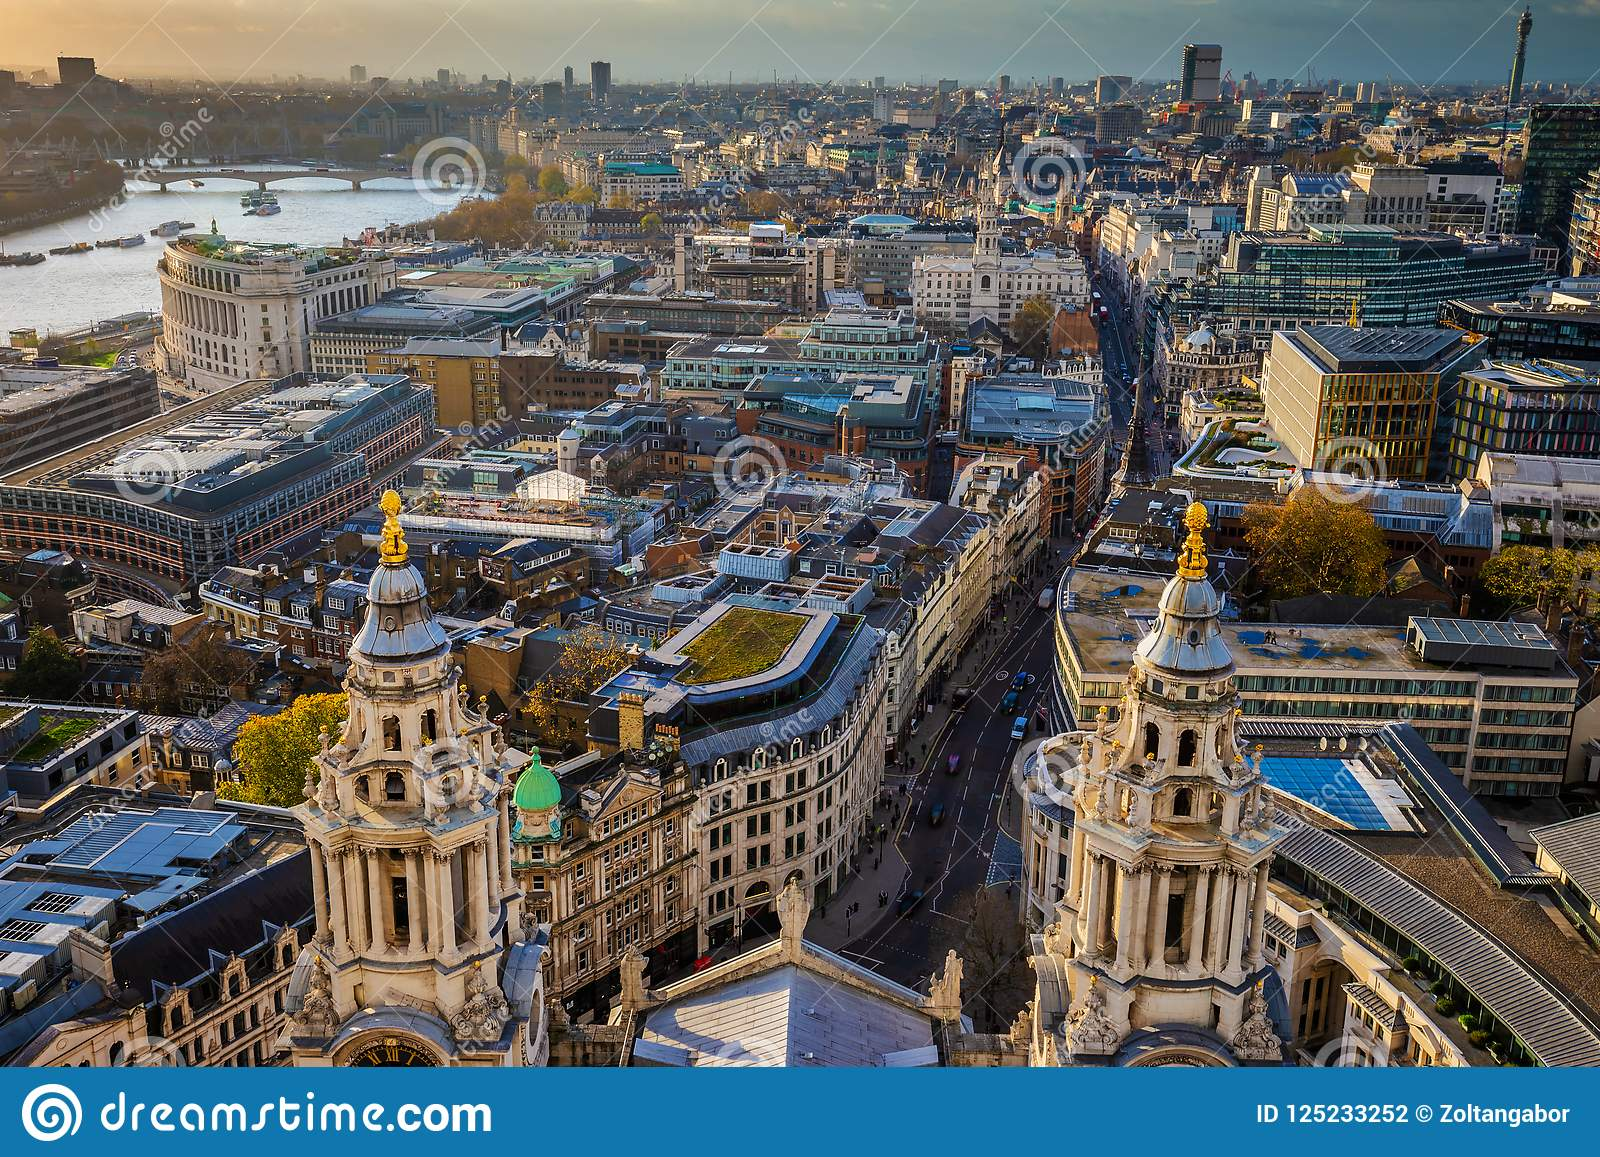 London, England - Aerial Skyline View Of London Taken From ...